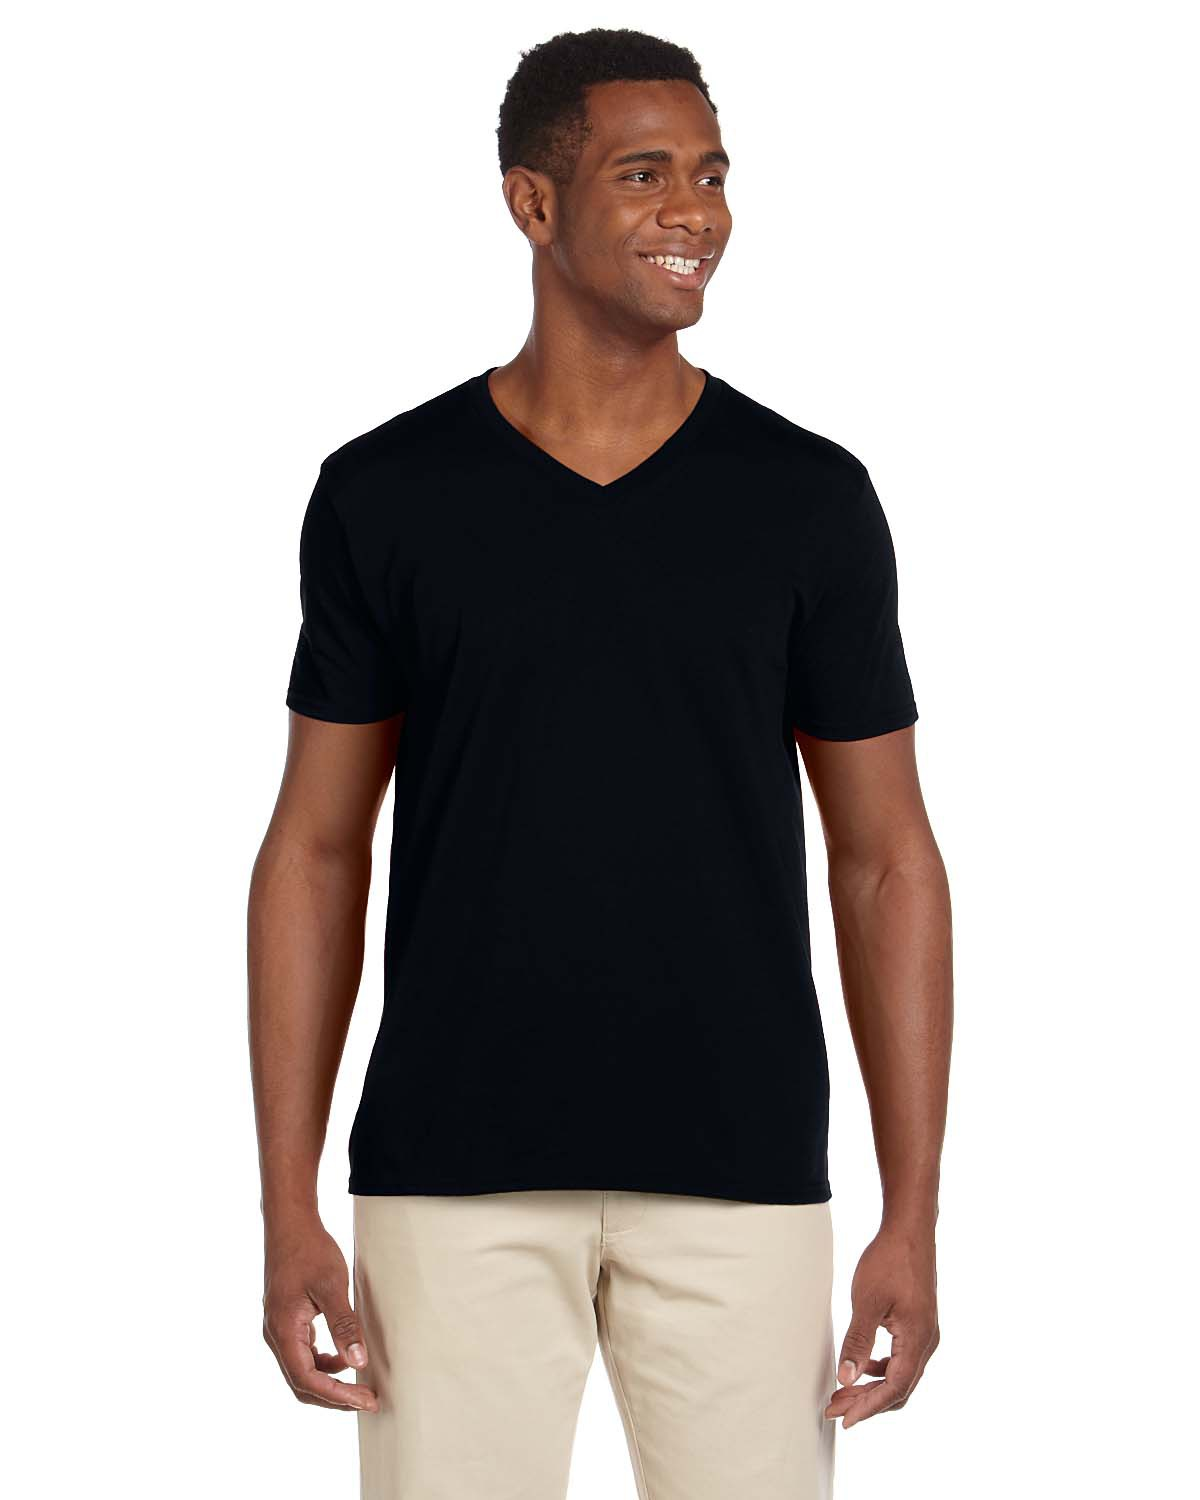 Gildan 64V00-Softstyle V-Neck T-Shirt